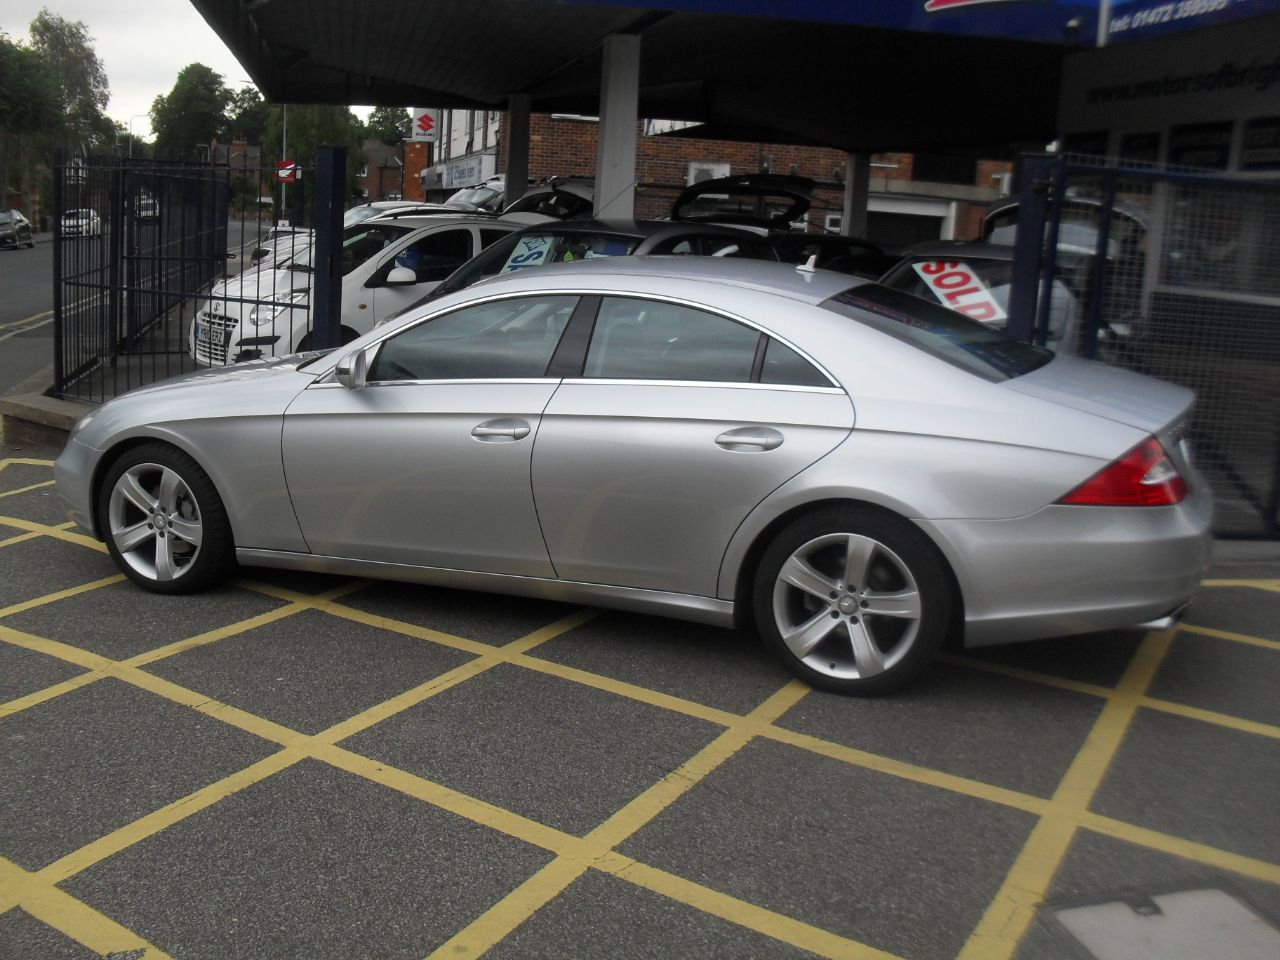 Mercedes-Benz CLS 3.0 CLS 320 CDI 4dr Tip Auto Coupe Diesel Silver at Motors of Brighowgate Grimsby